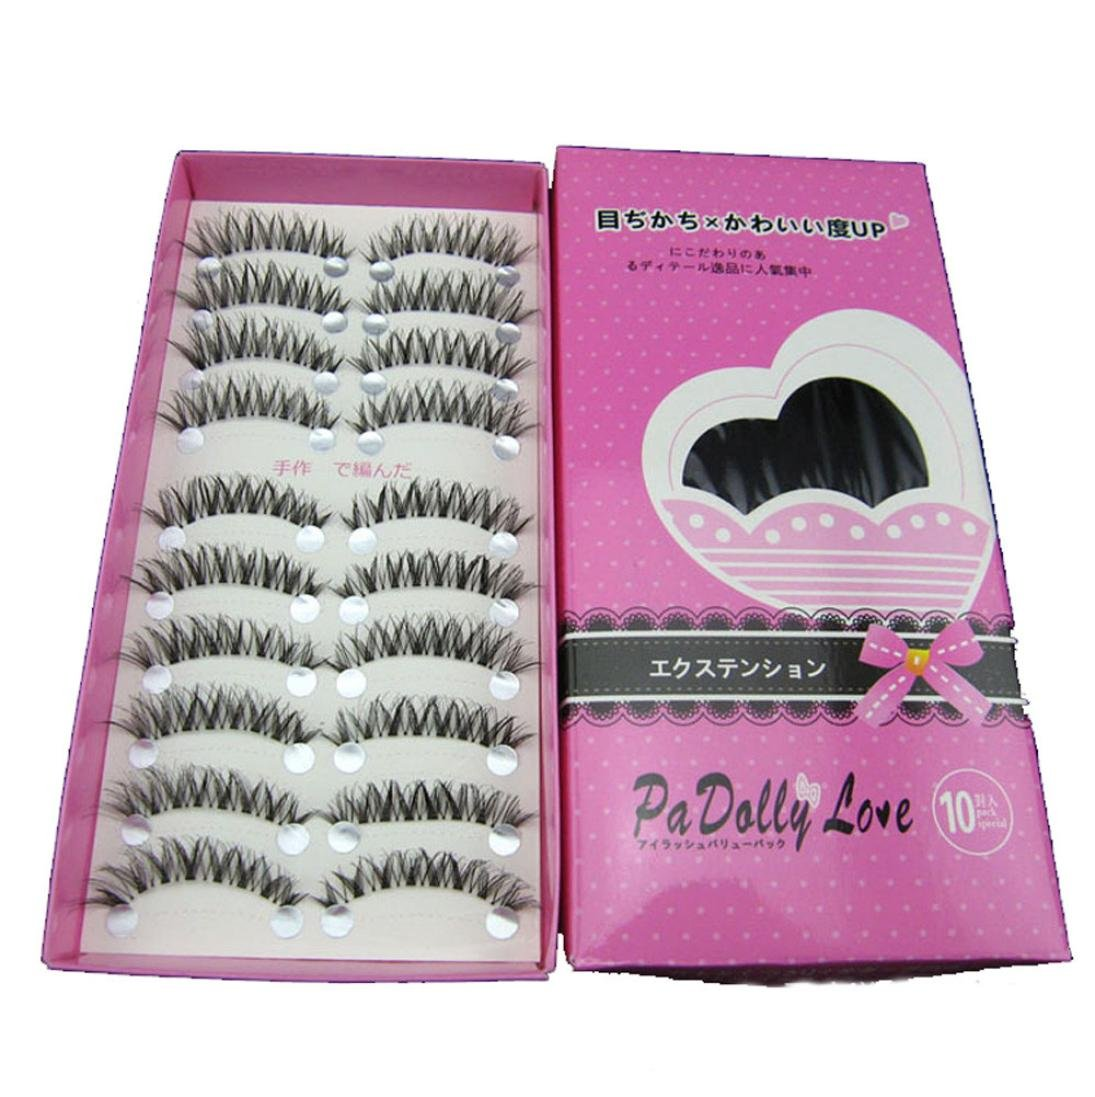 Chartsea Japanese Style Black 10 Pairs Eyelashes (Black)